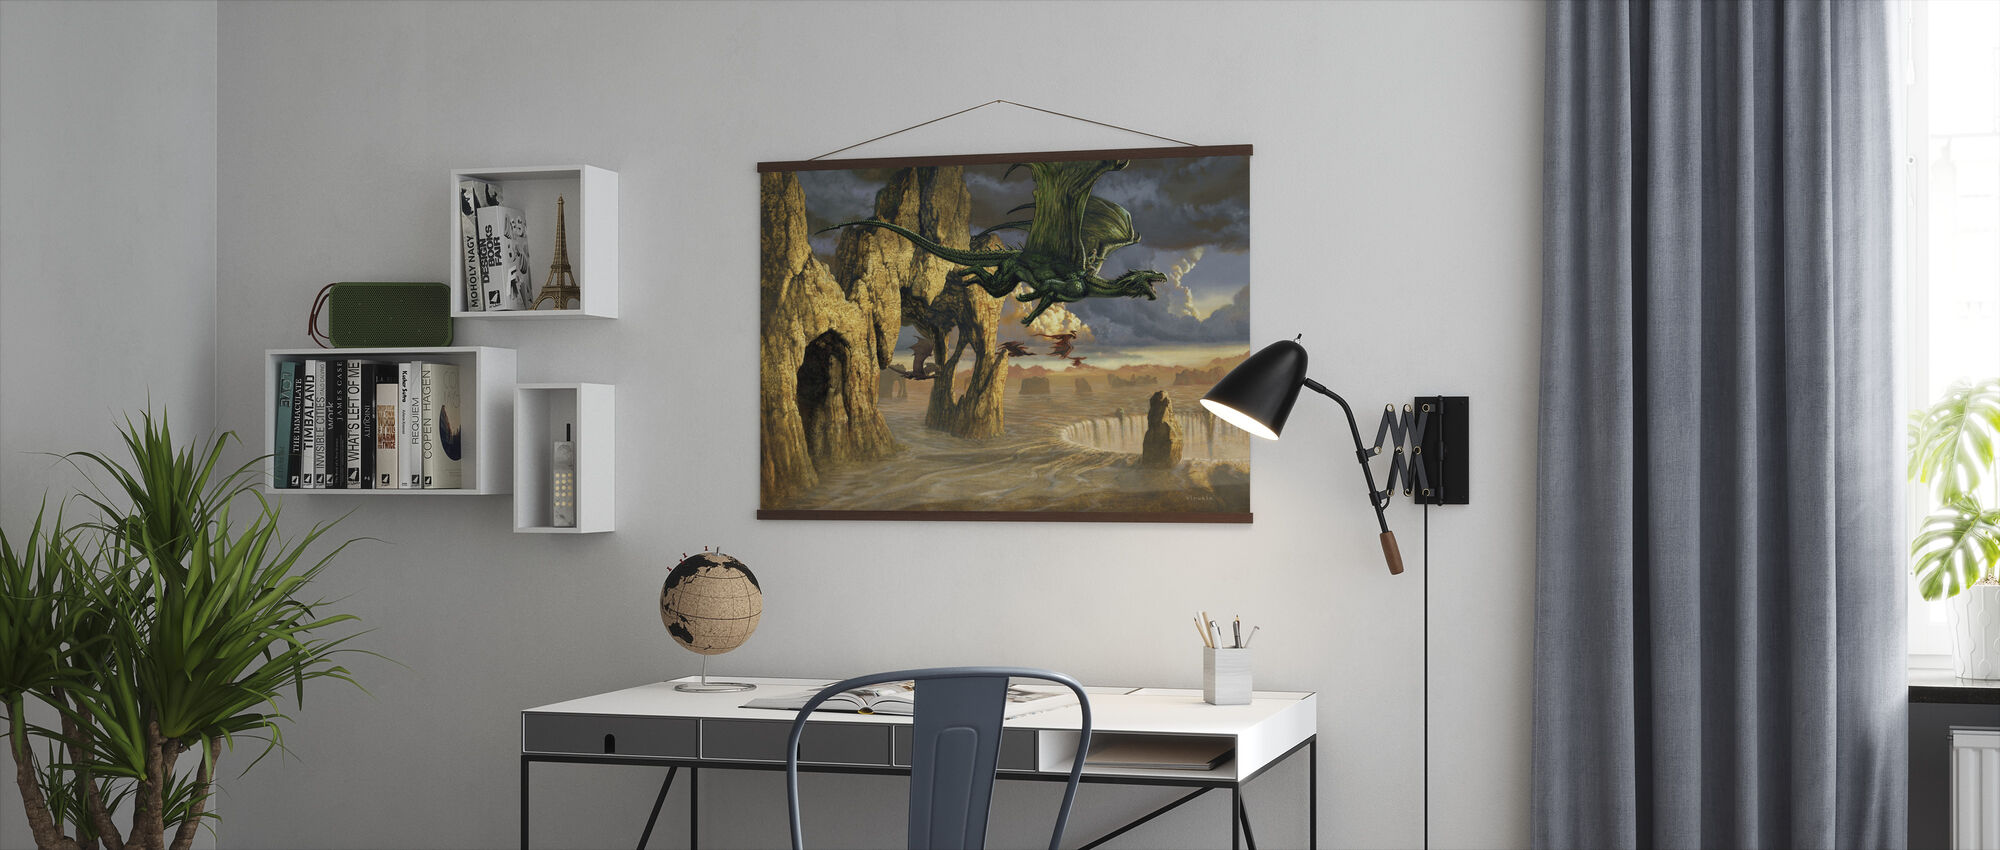 Exodux - Poster - Office